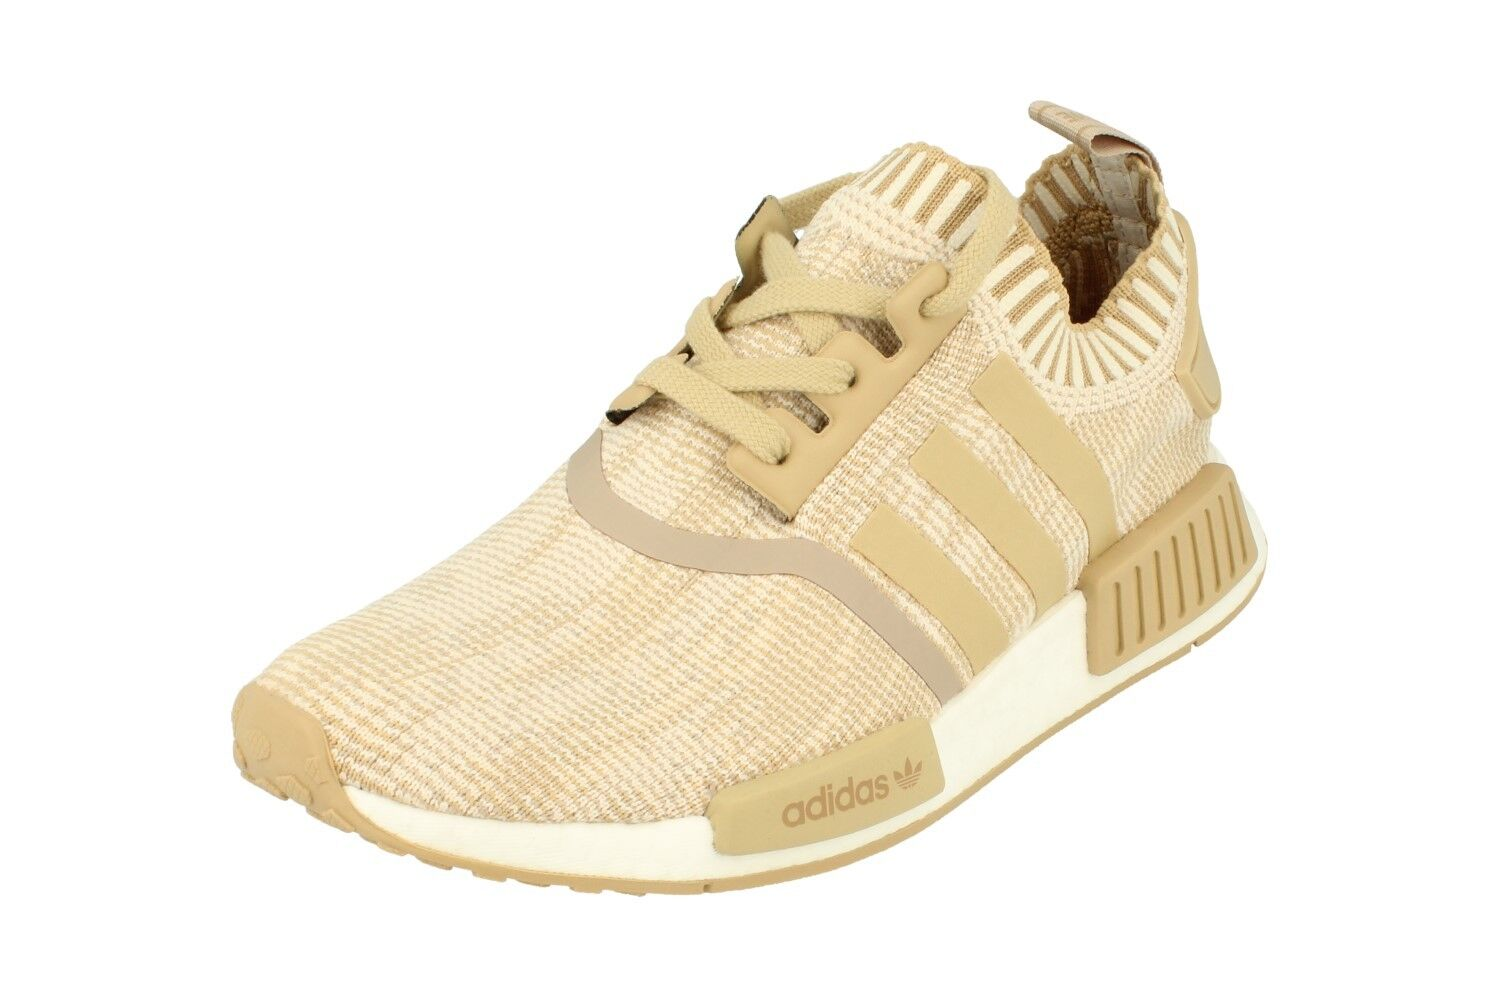 Adidas Originals Nmd_R1 Pk Mens Sneakers Shoes Prime Knit BY1912